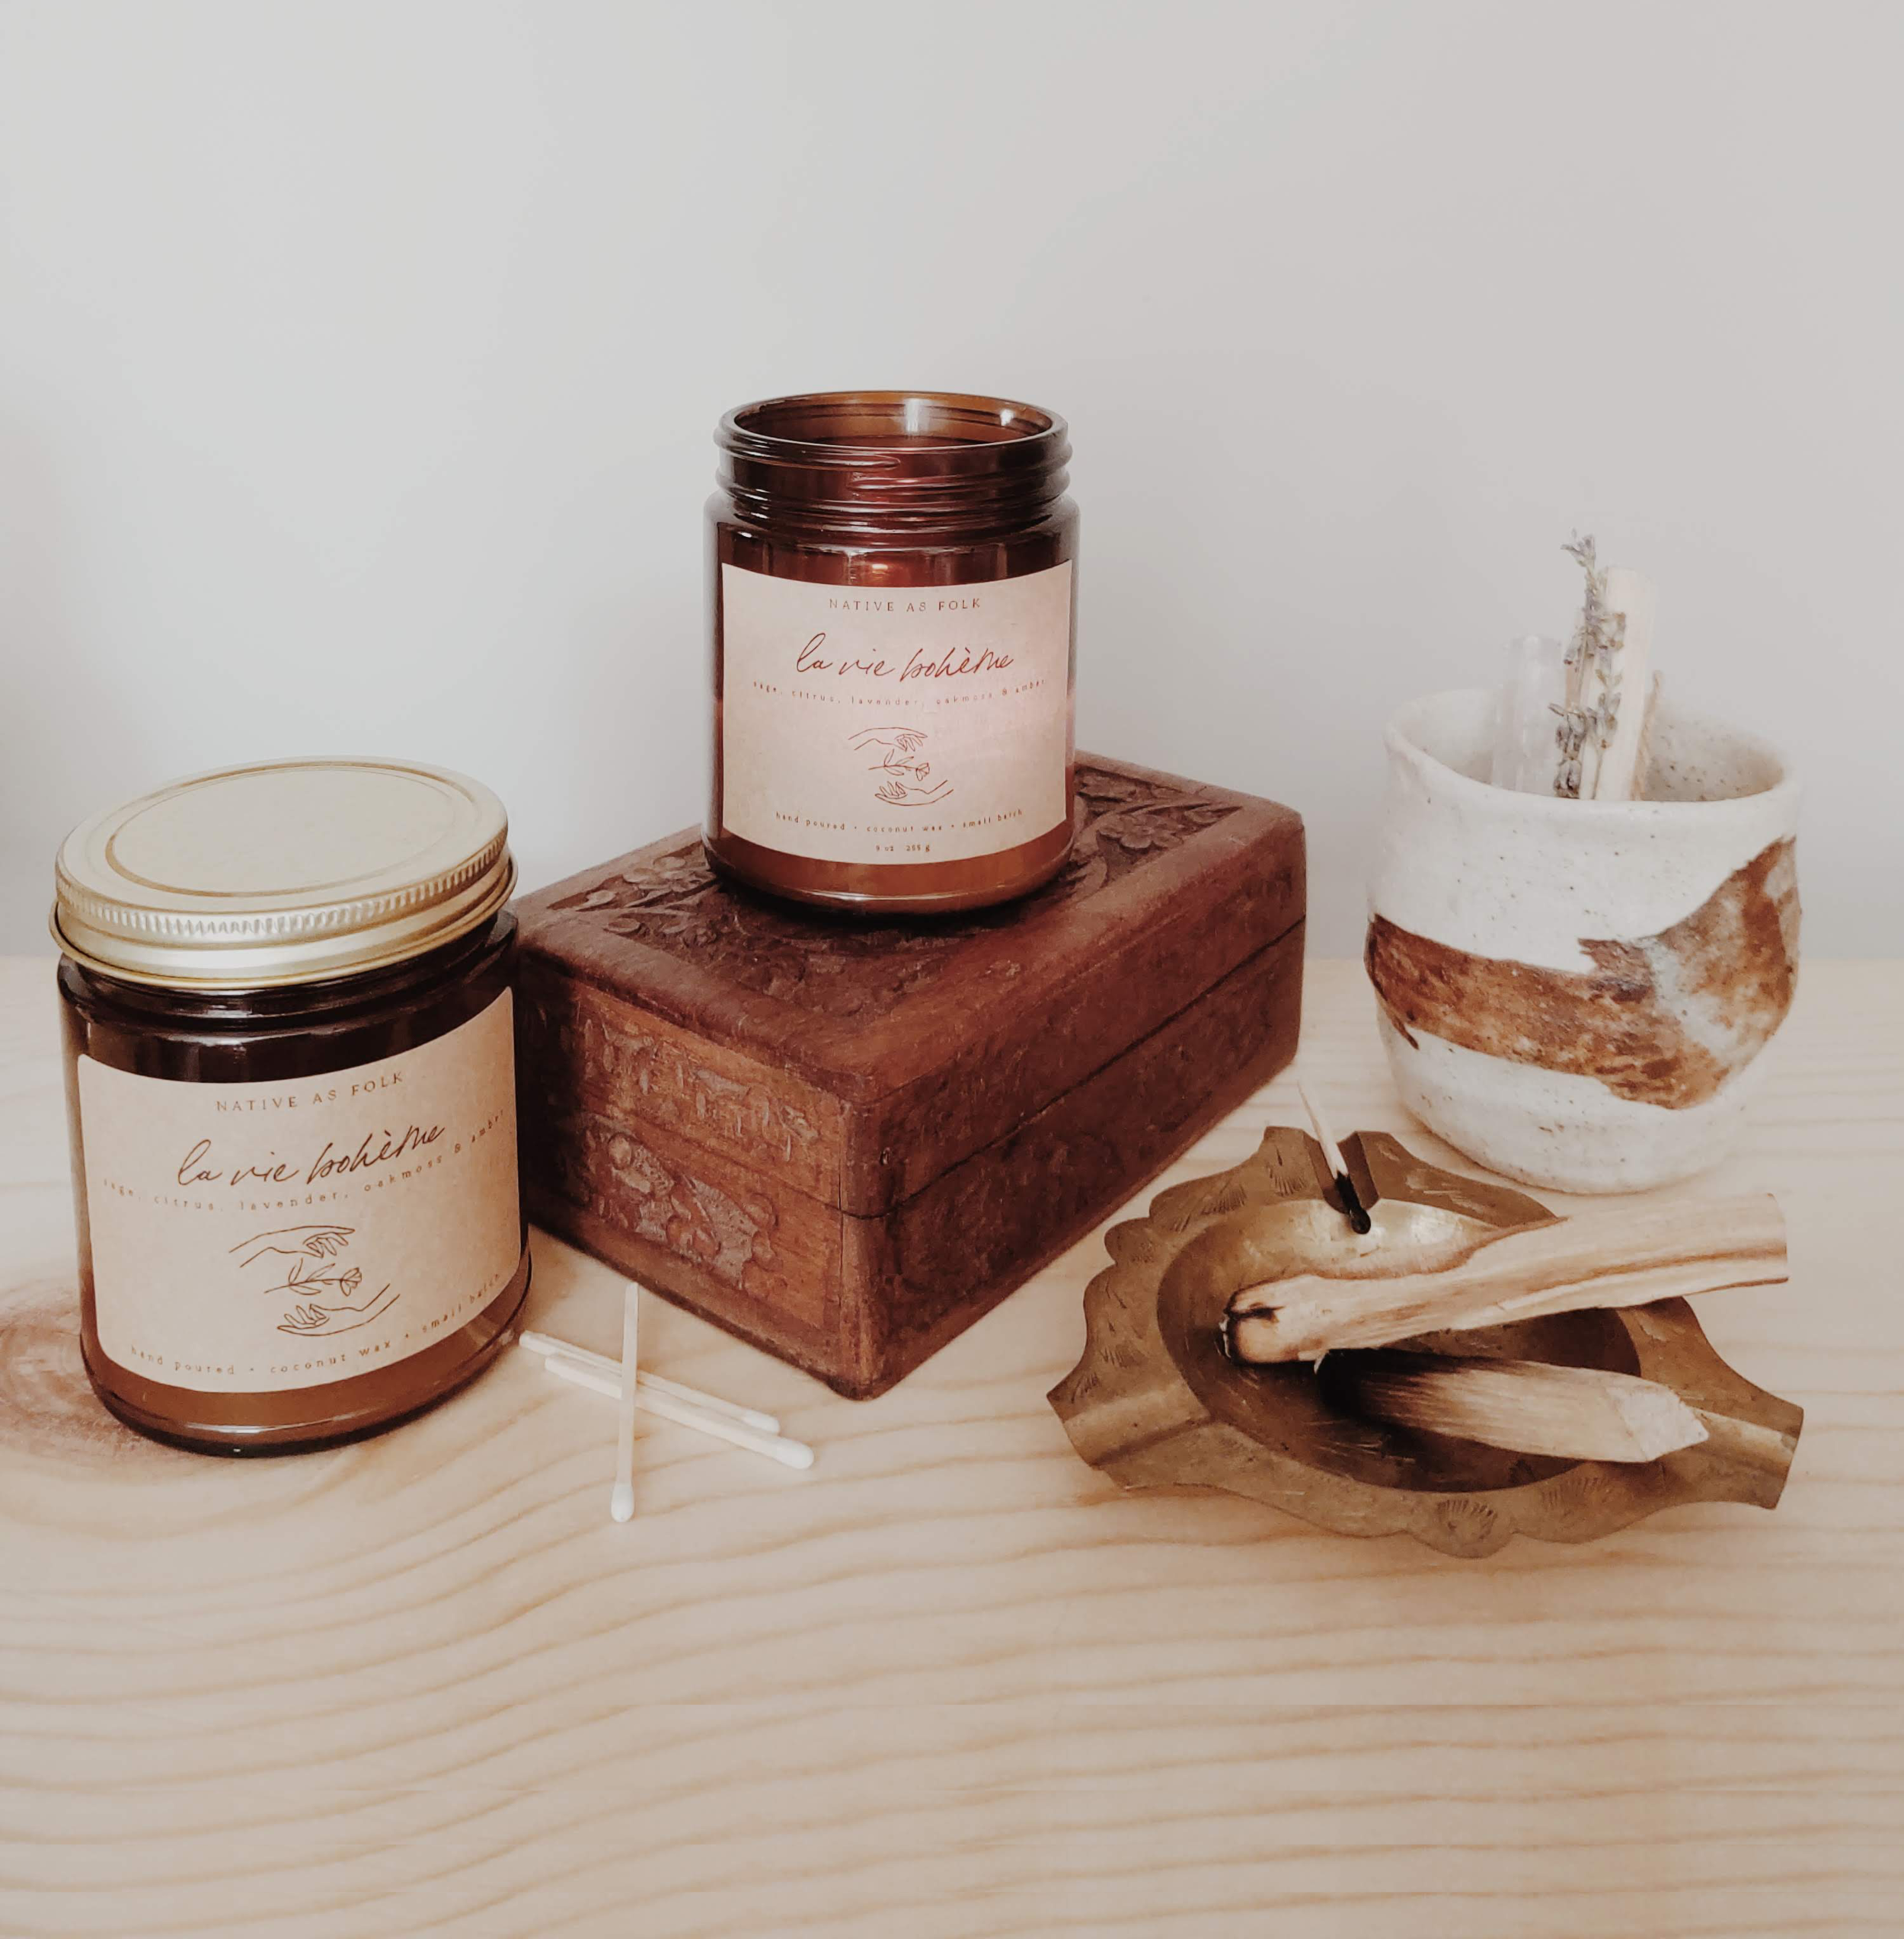 organic + vegan + sustainable - Our candles are handcrafted with a base blend of organic, renewable coconut wax, GMO-free soy wax, a lead-free hemp wick, and pure essential oils.